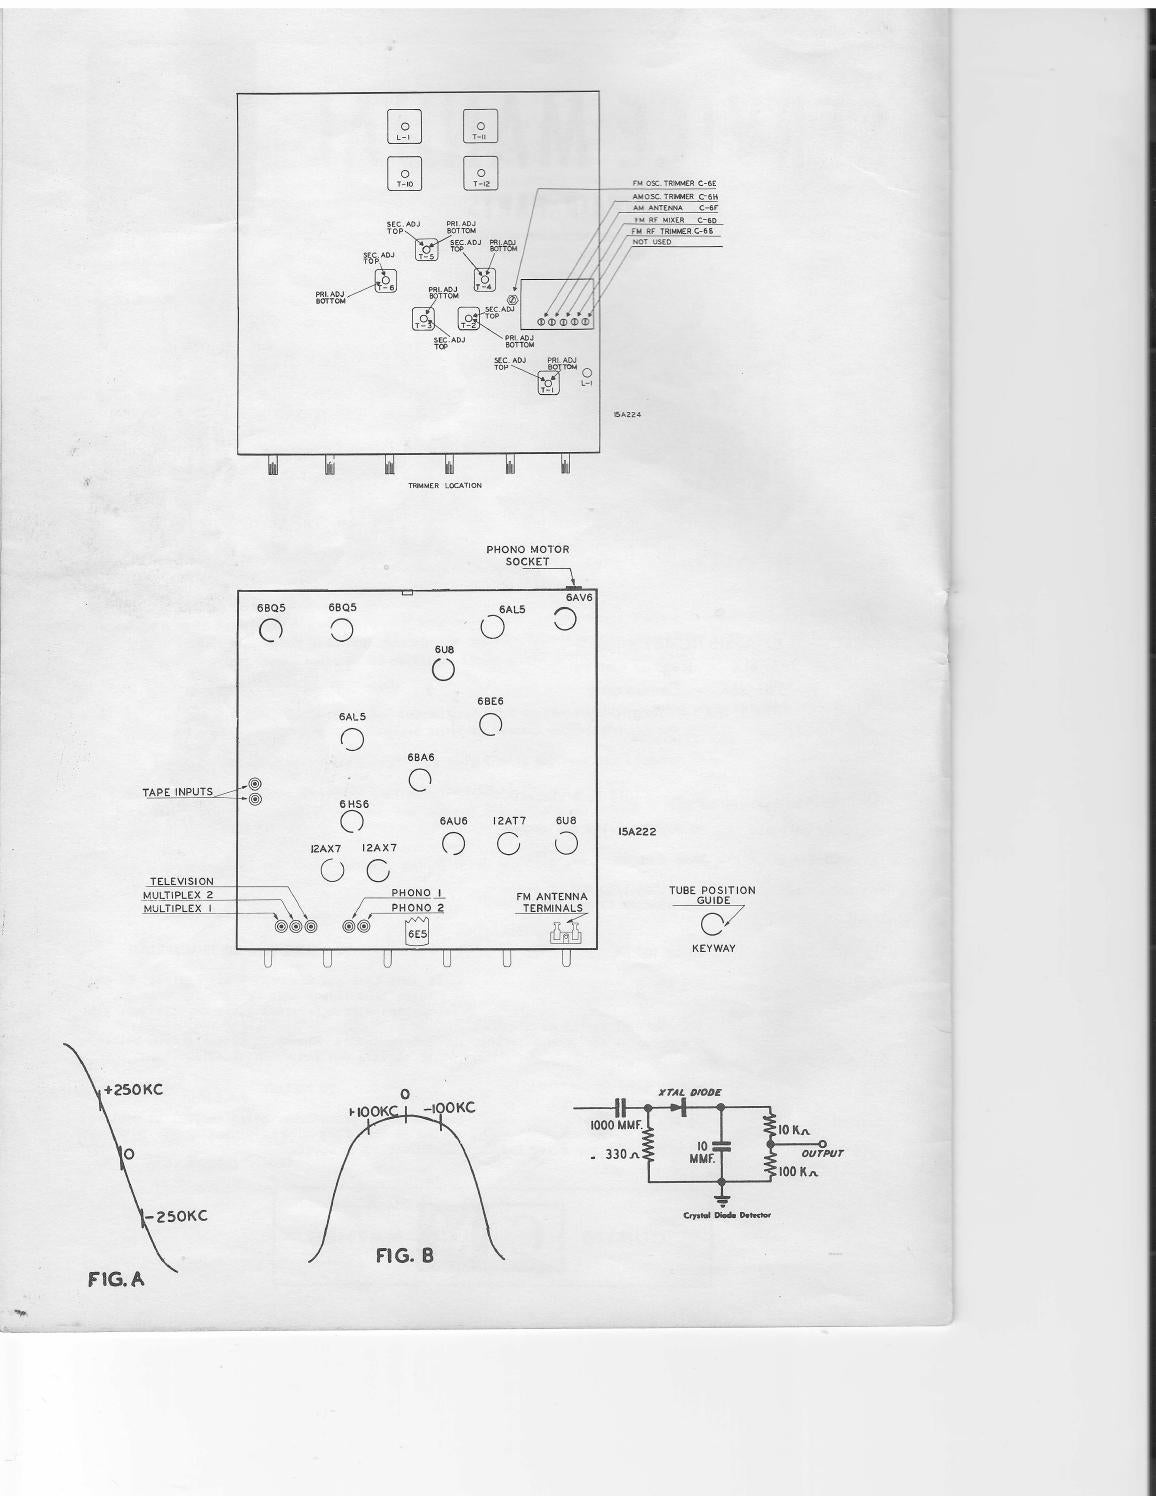 typical wiring diagram 96 s10 radio jvc kd car stereo harnes database panasonic harness diagrams darren criss manual e books pioneer